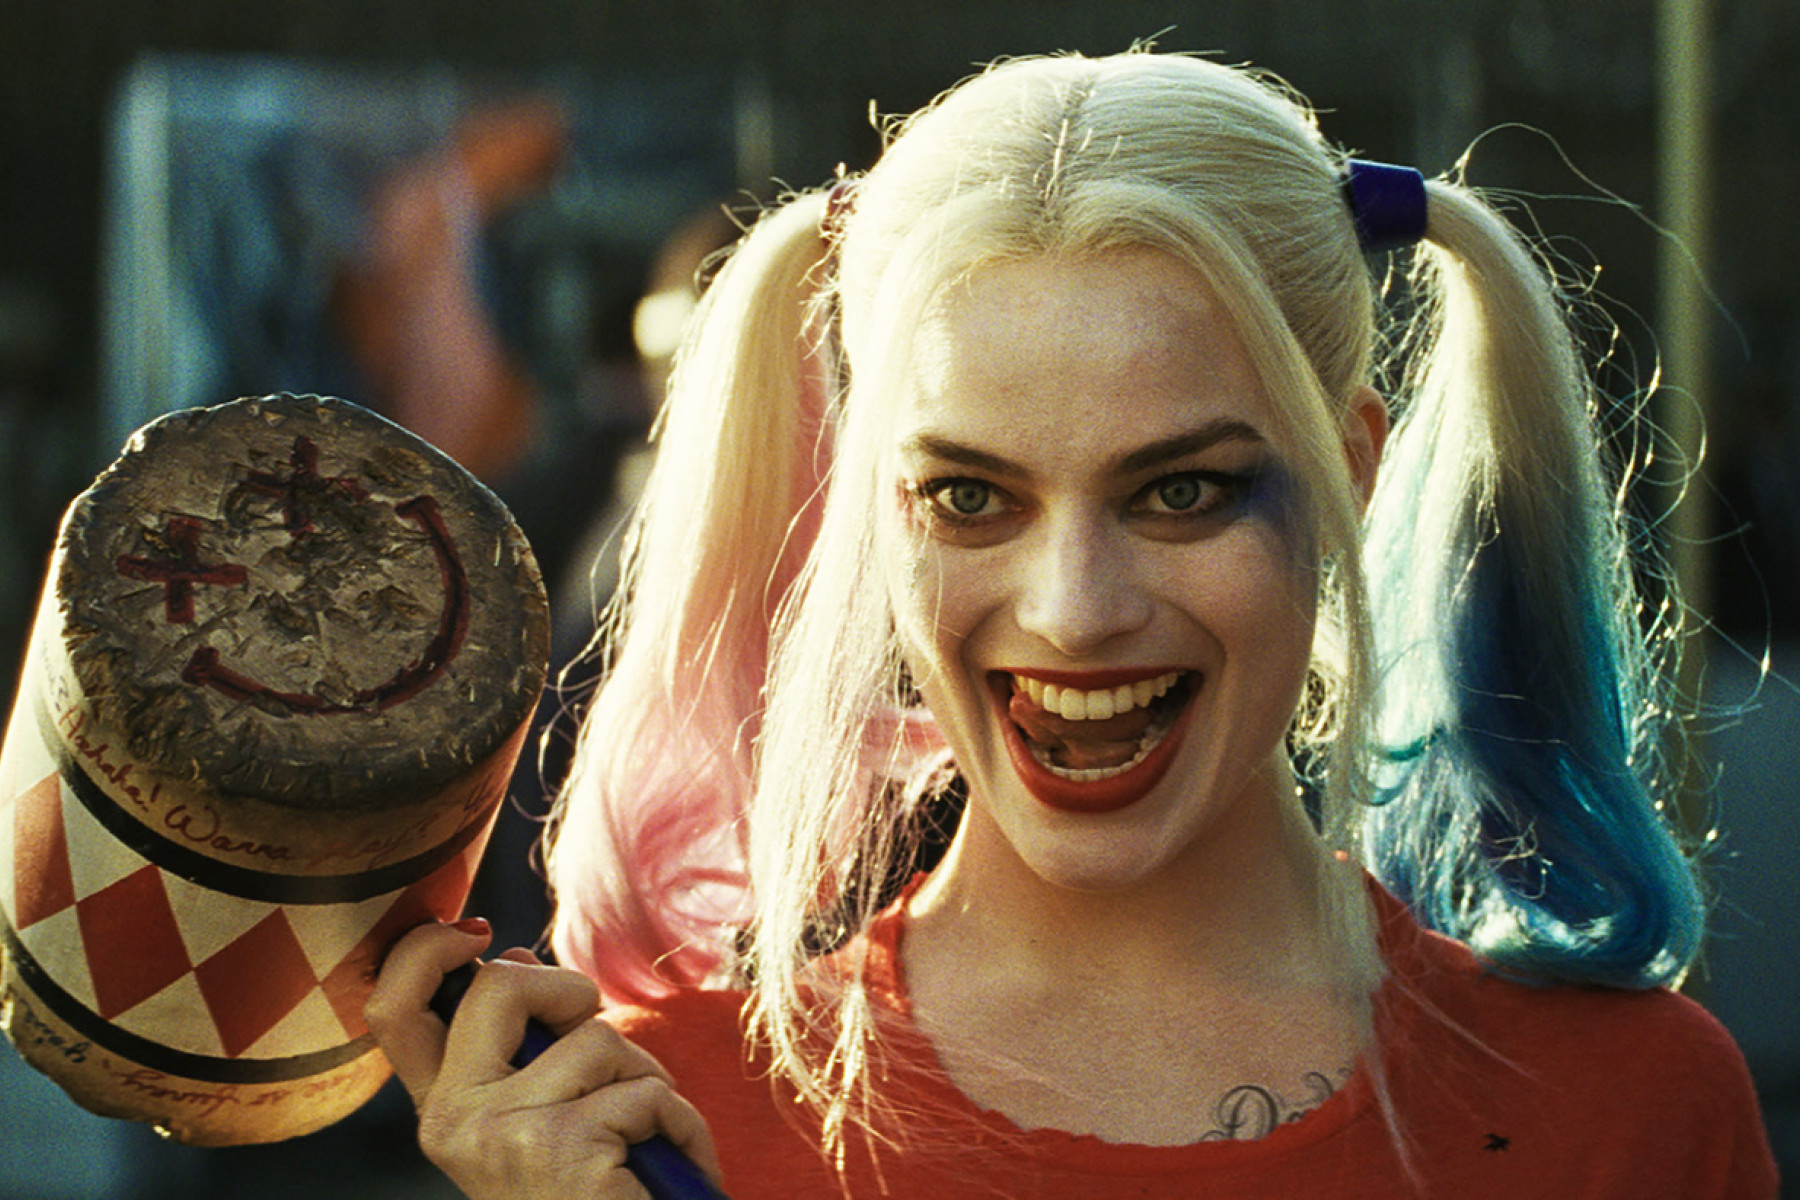 David Ayer Claims His Suicide Squad Movie Has Never Been Seen